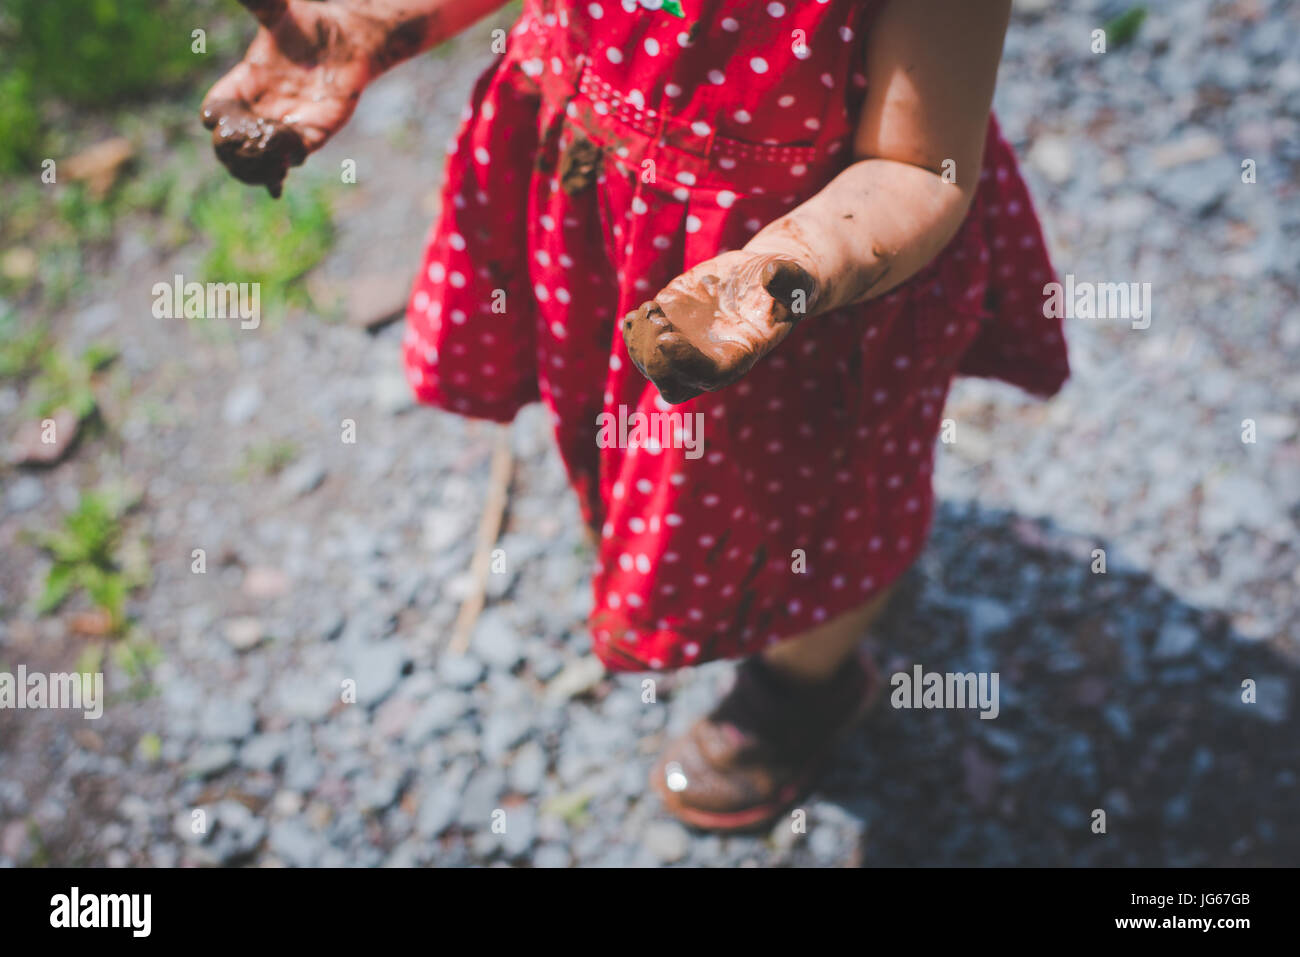 A child's hands are covered in mud - Stock Image